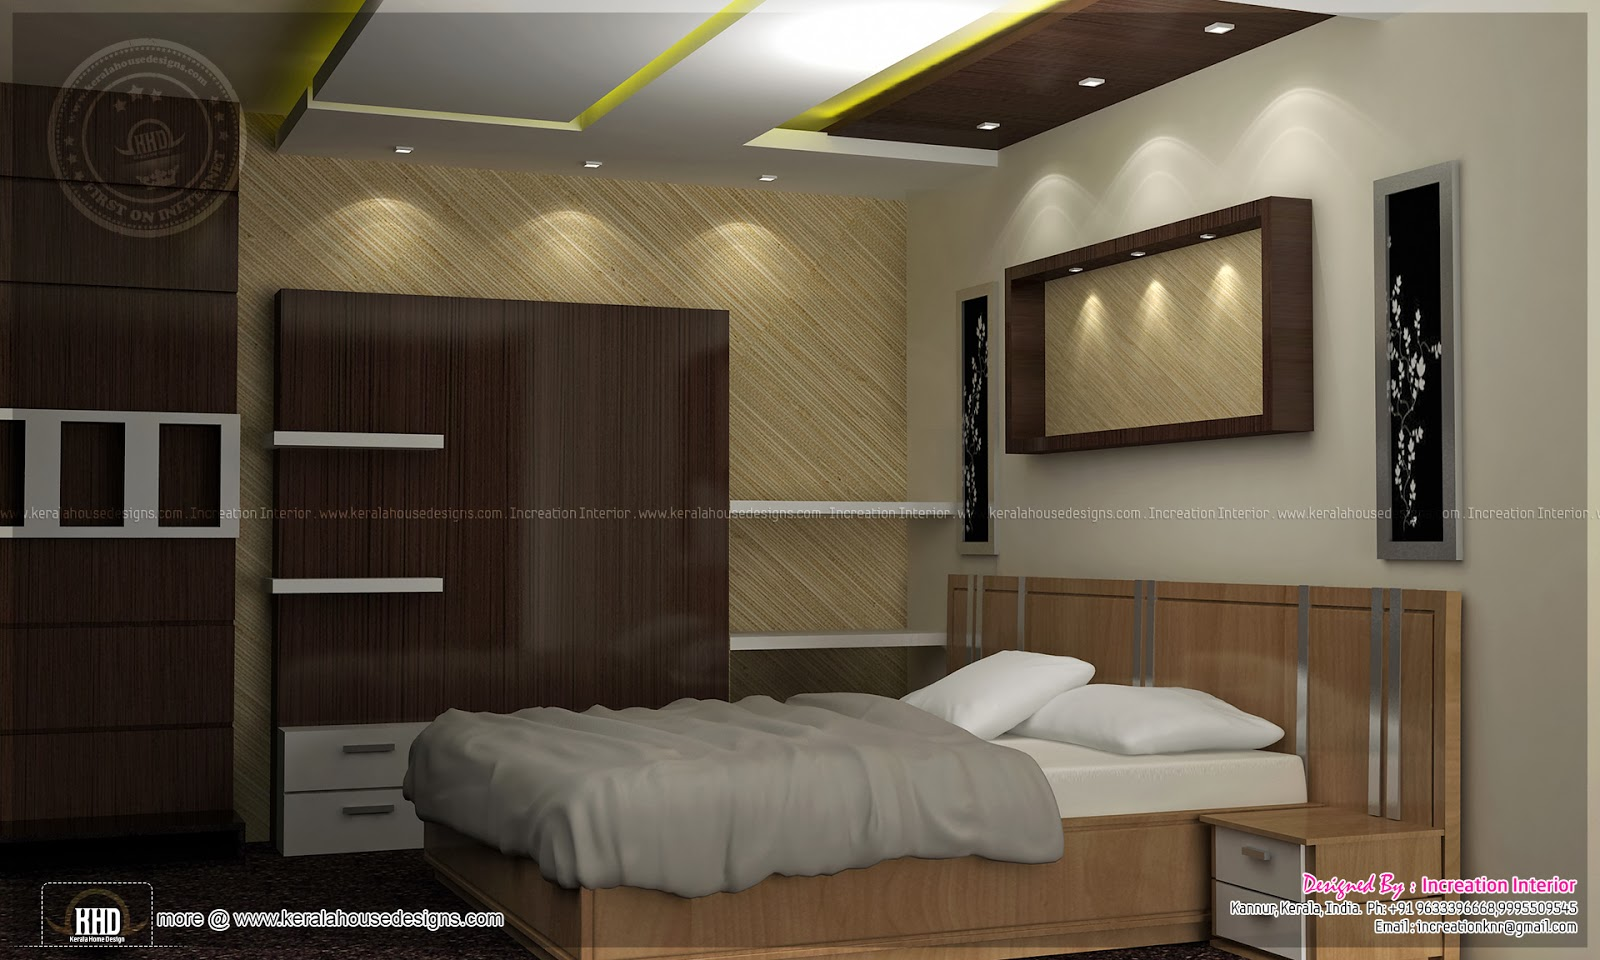 Bedroom interior designs indian house plans for New style bedroom design